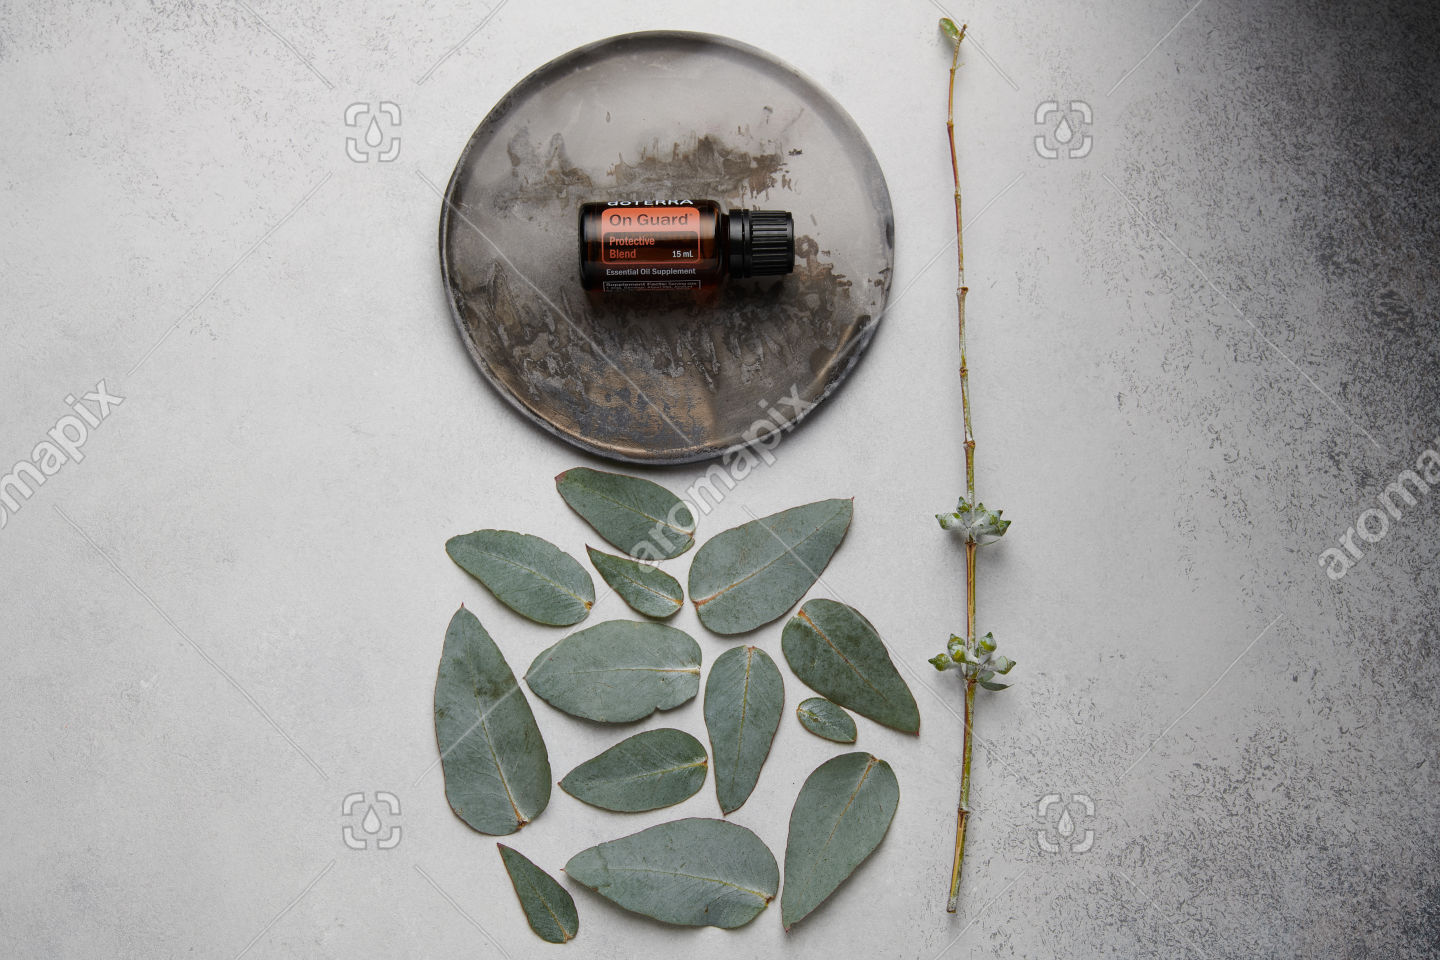 doTERRA On Guard and eucalyptus leaves on white concrete